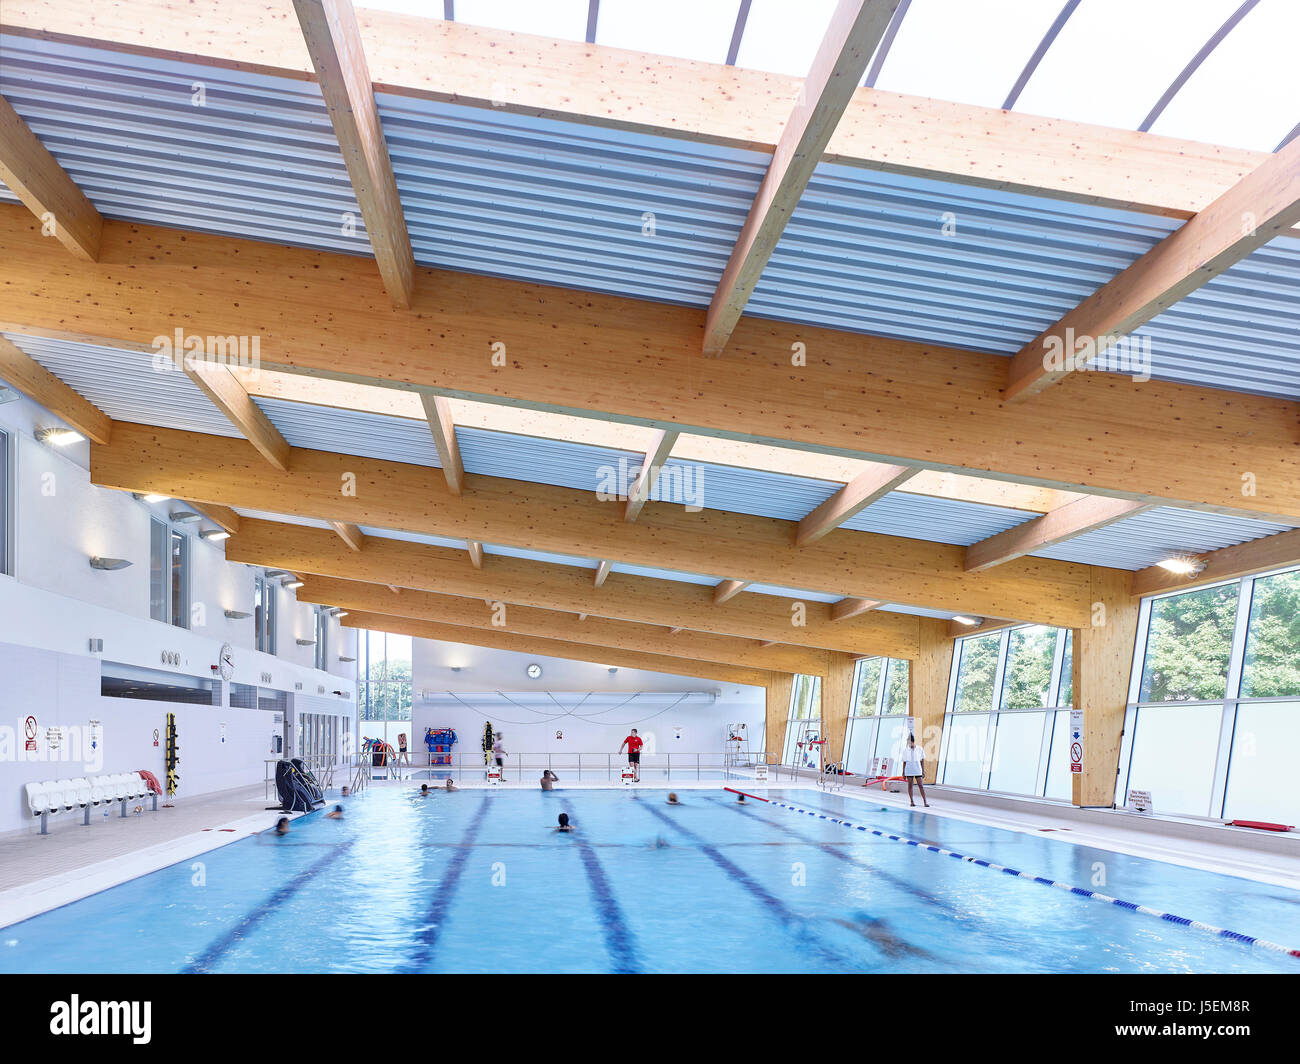 Corrugated ceiling stock photos corrugated ceiling stock images alamy for Swimming pool treatment options